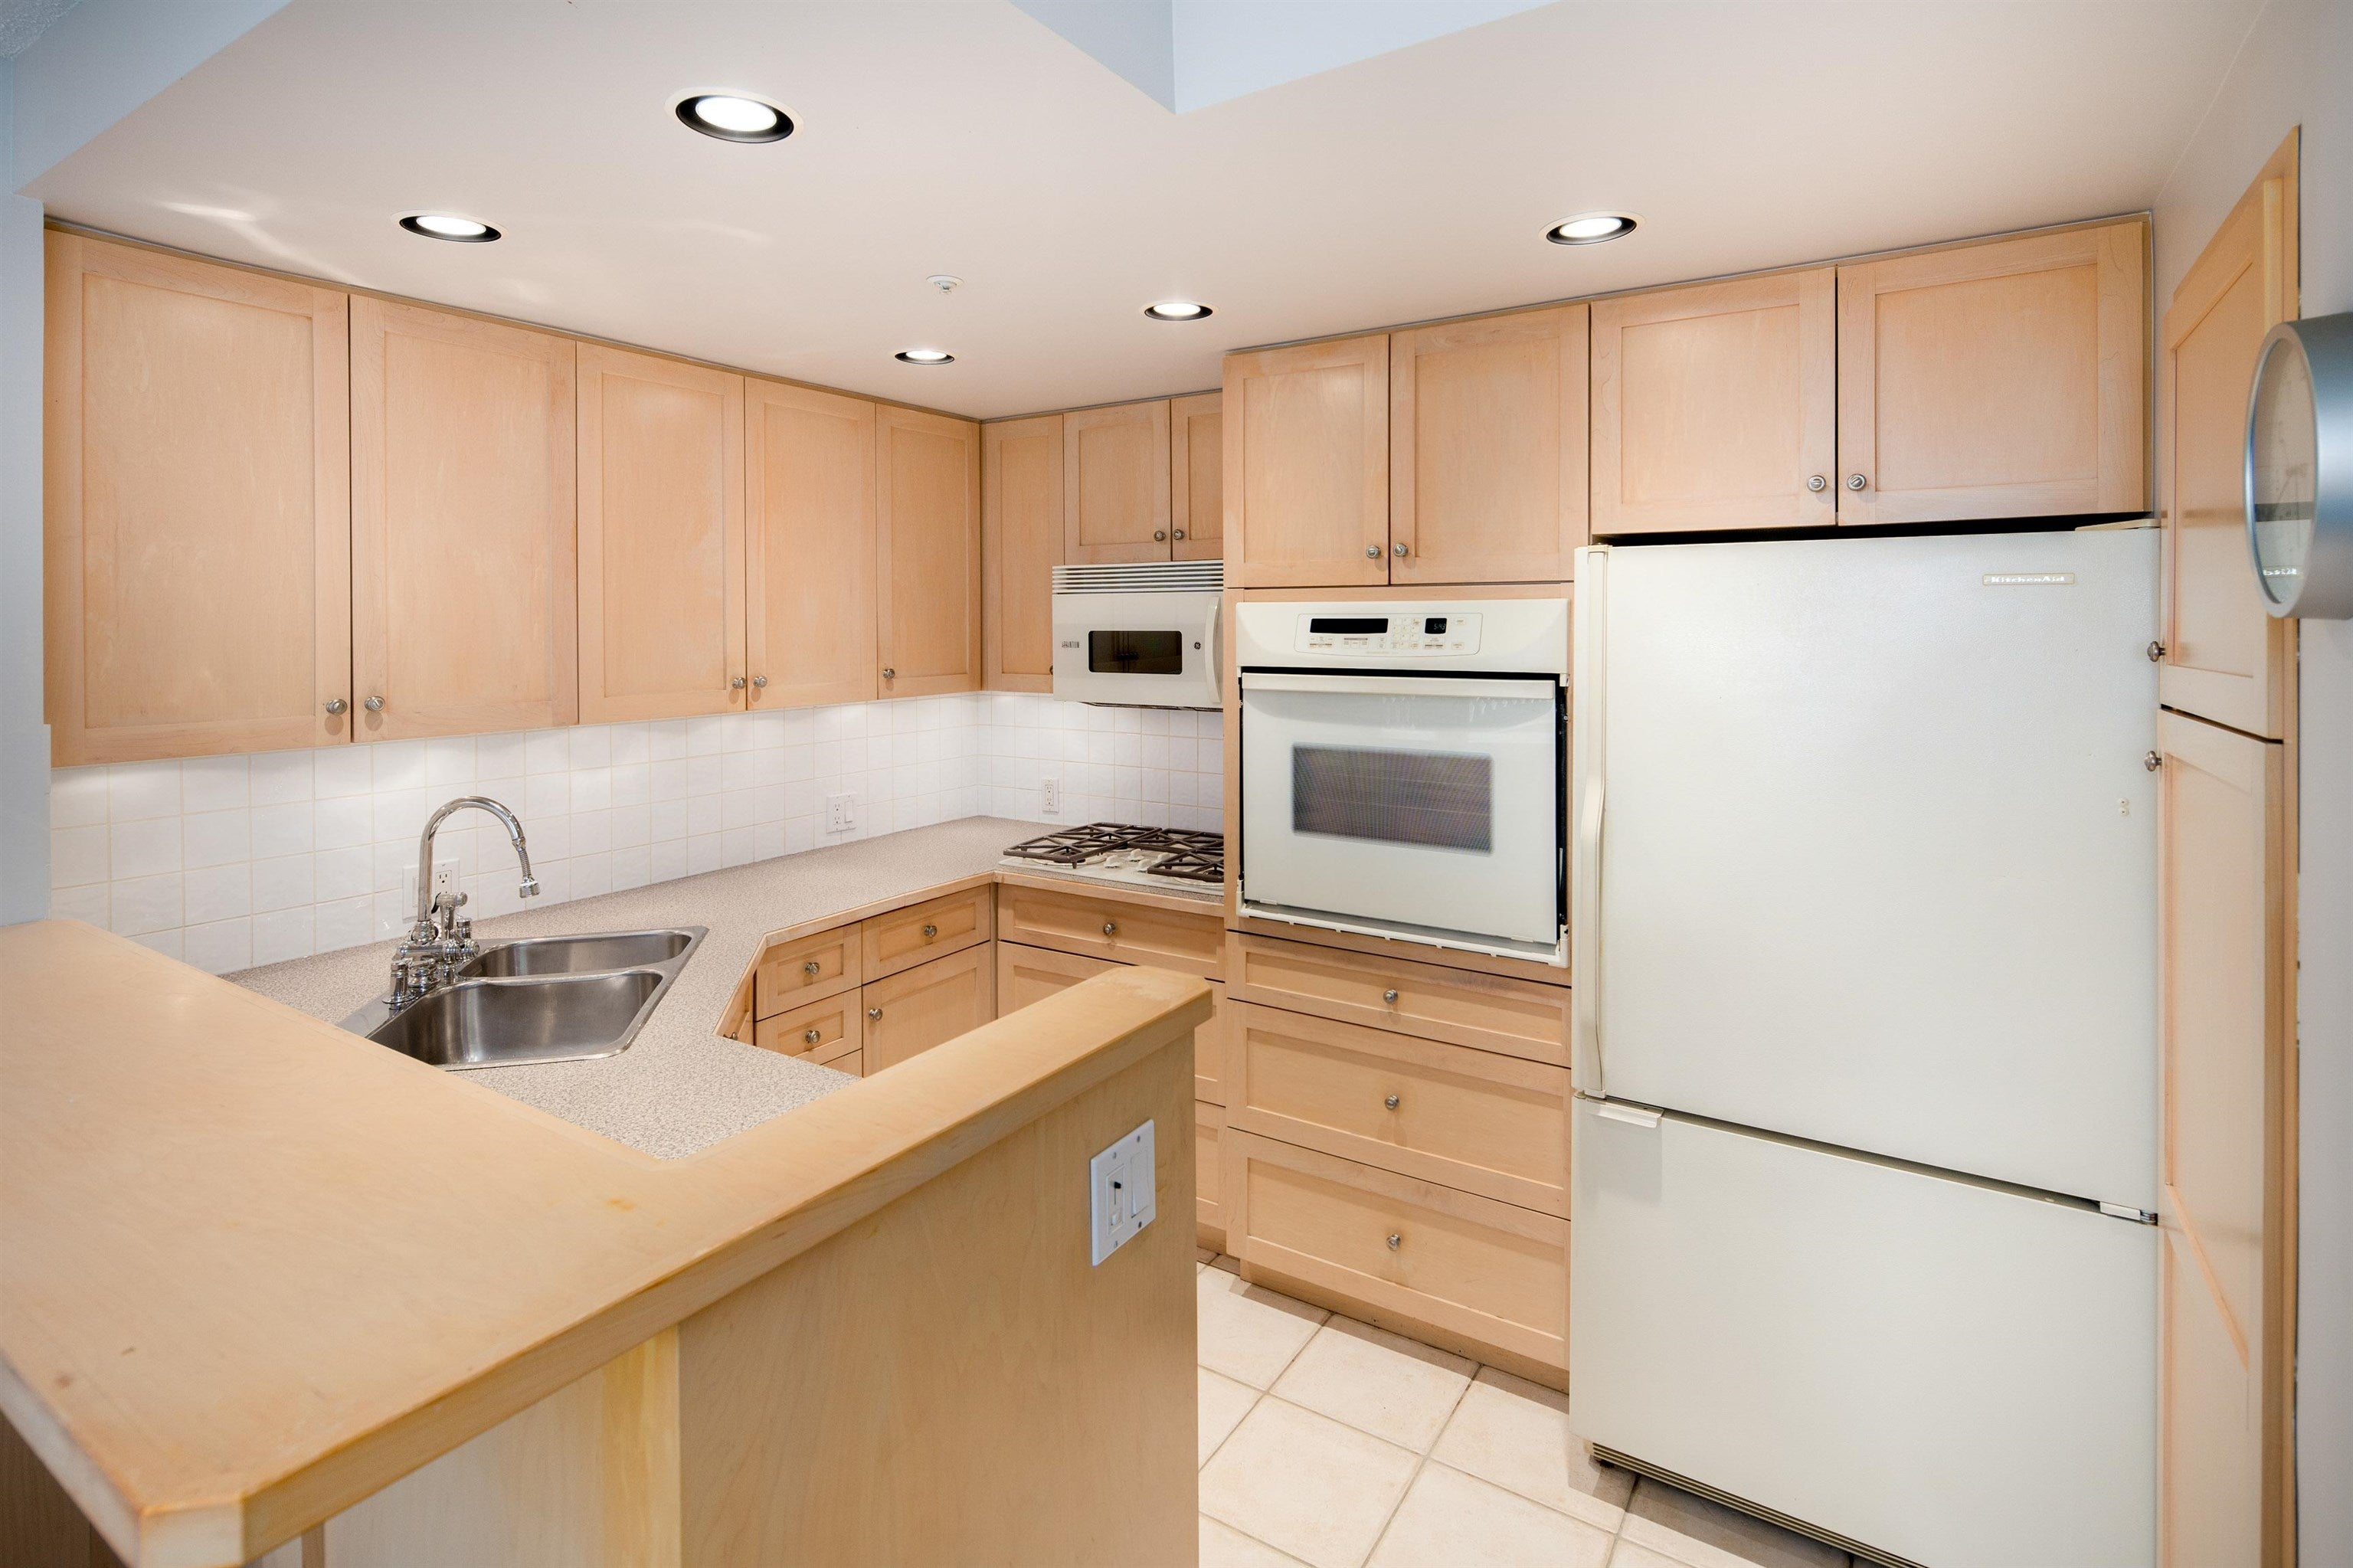 B1 2202 MARINE DRIVE - Dundarave Apartment/Condo for sale, 1 Bedroom (R2616441) - #11